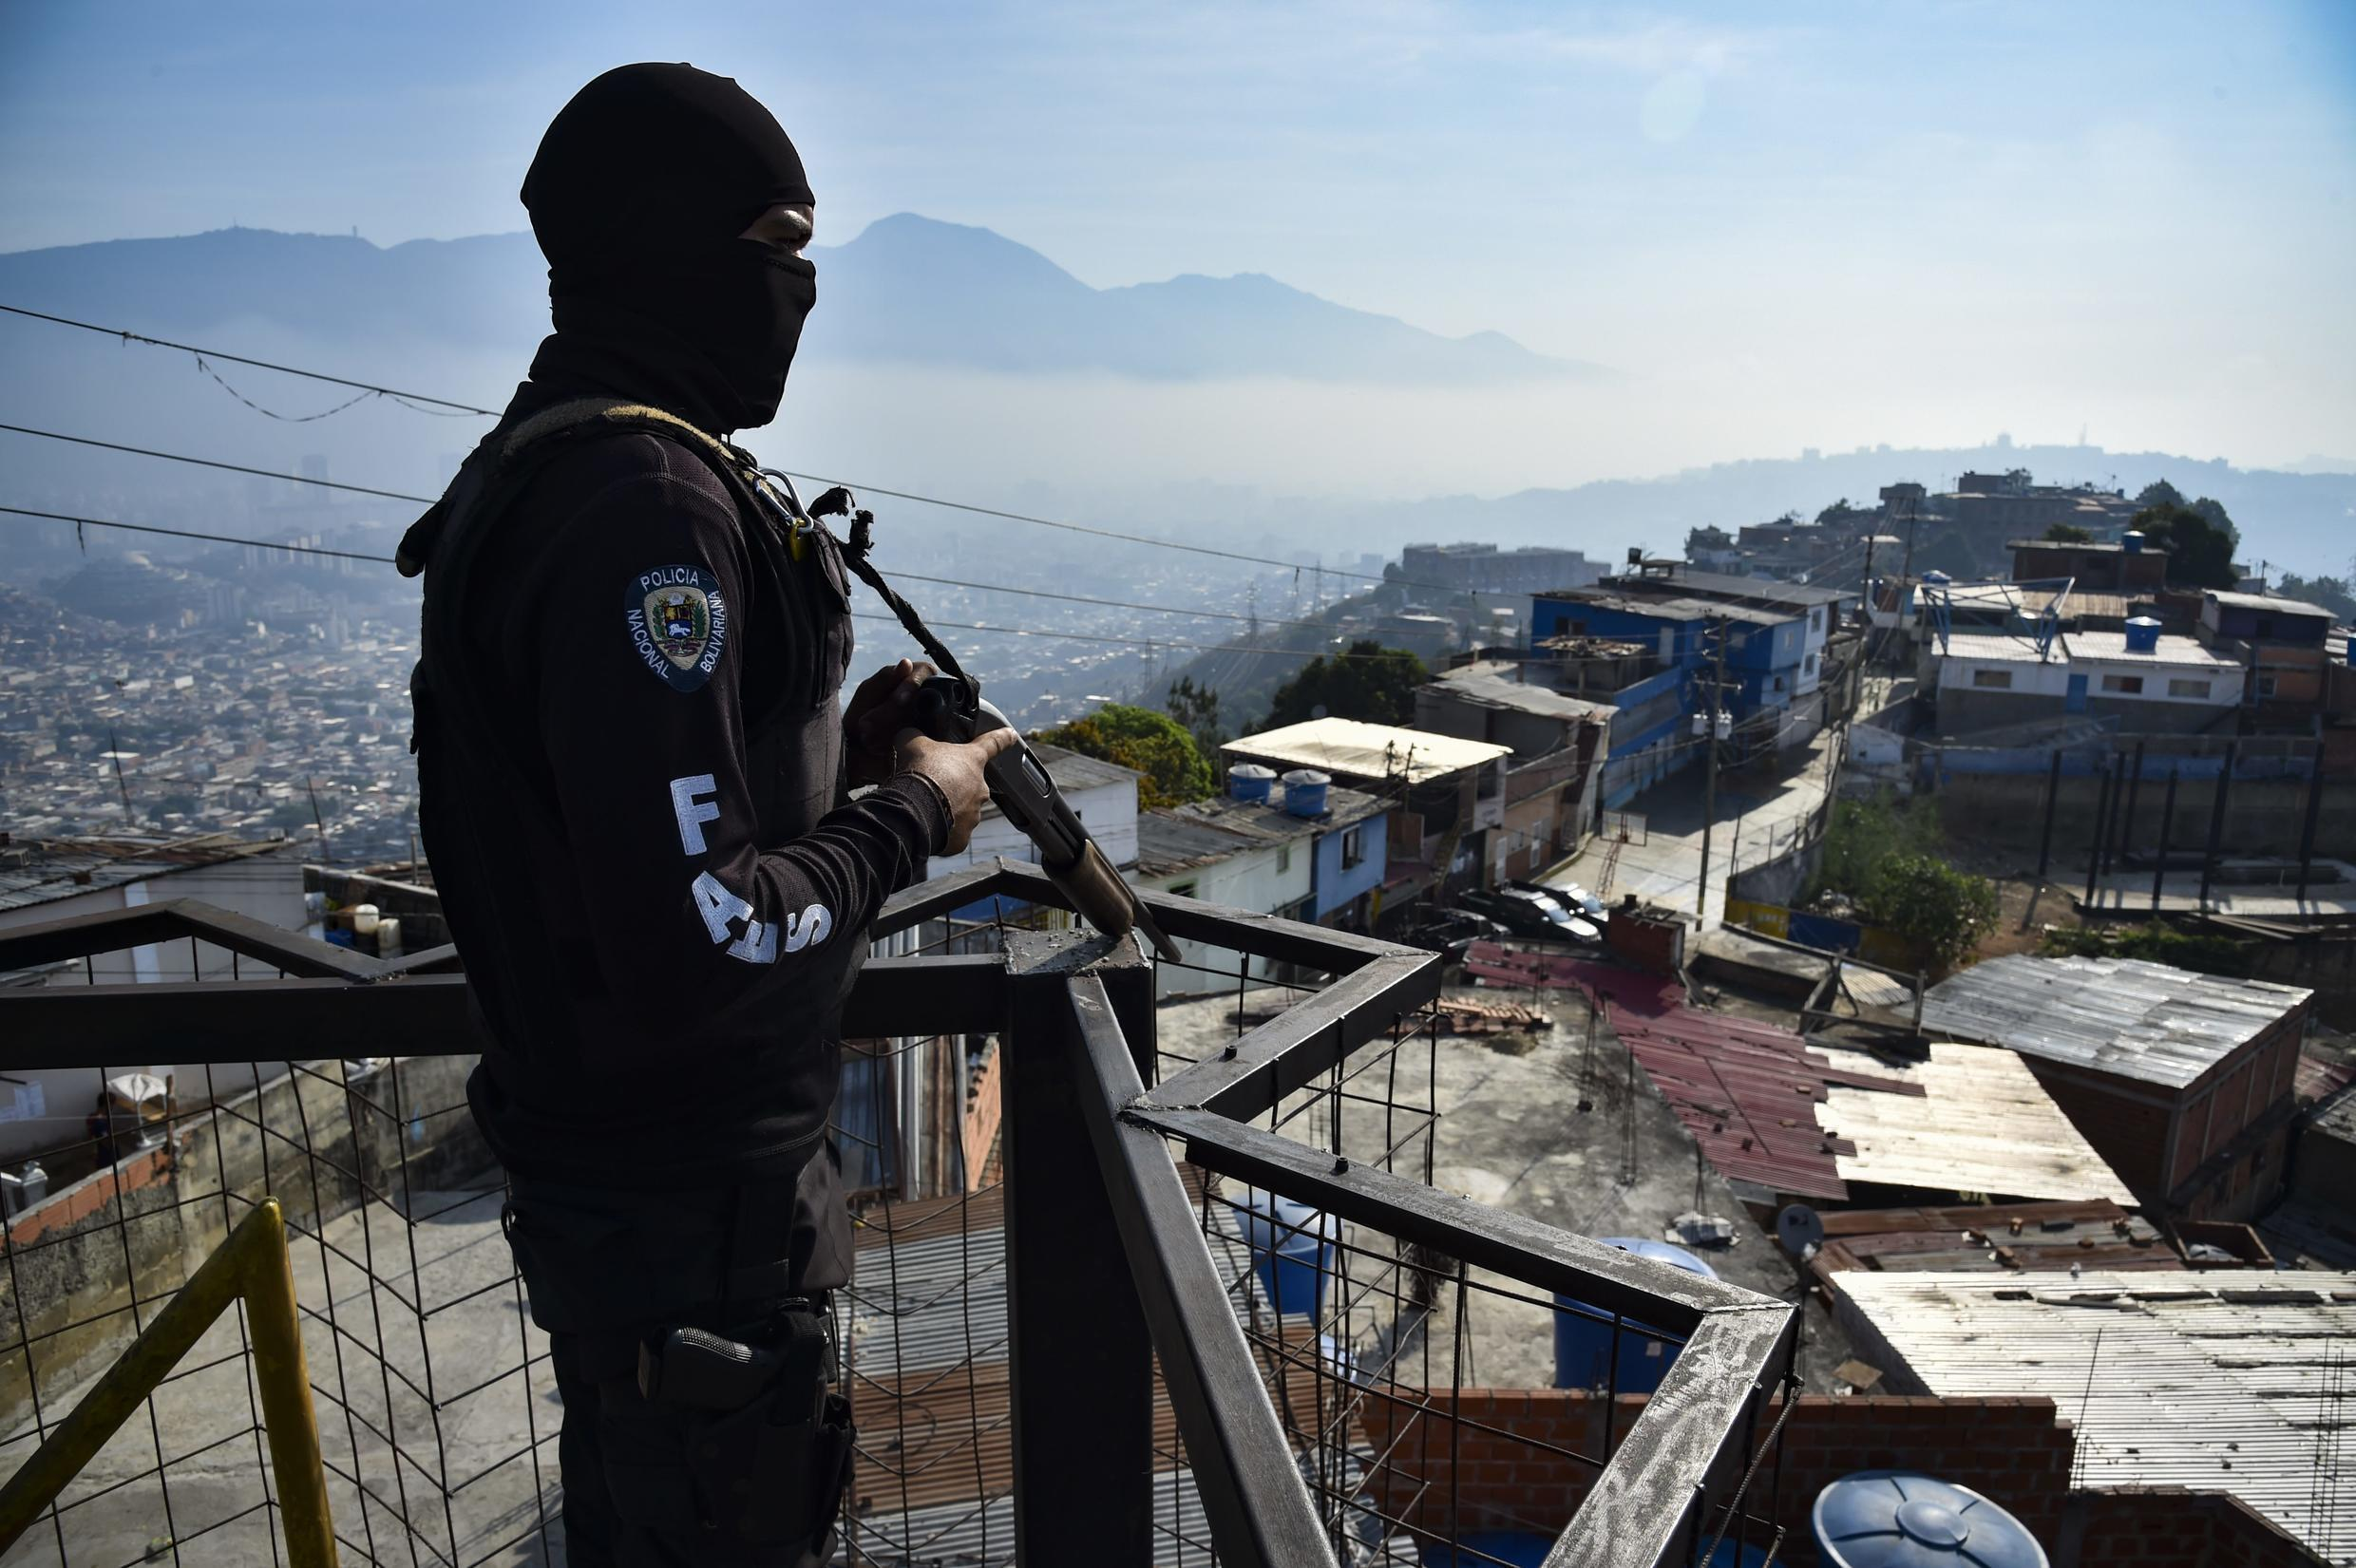 A member of Venezuela's special forces stands guard during a police operation in a Caracas neighborhood in April 2019